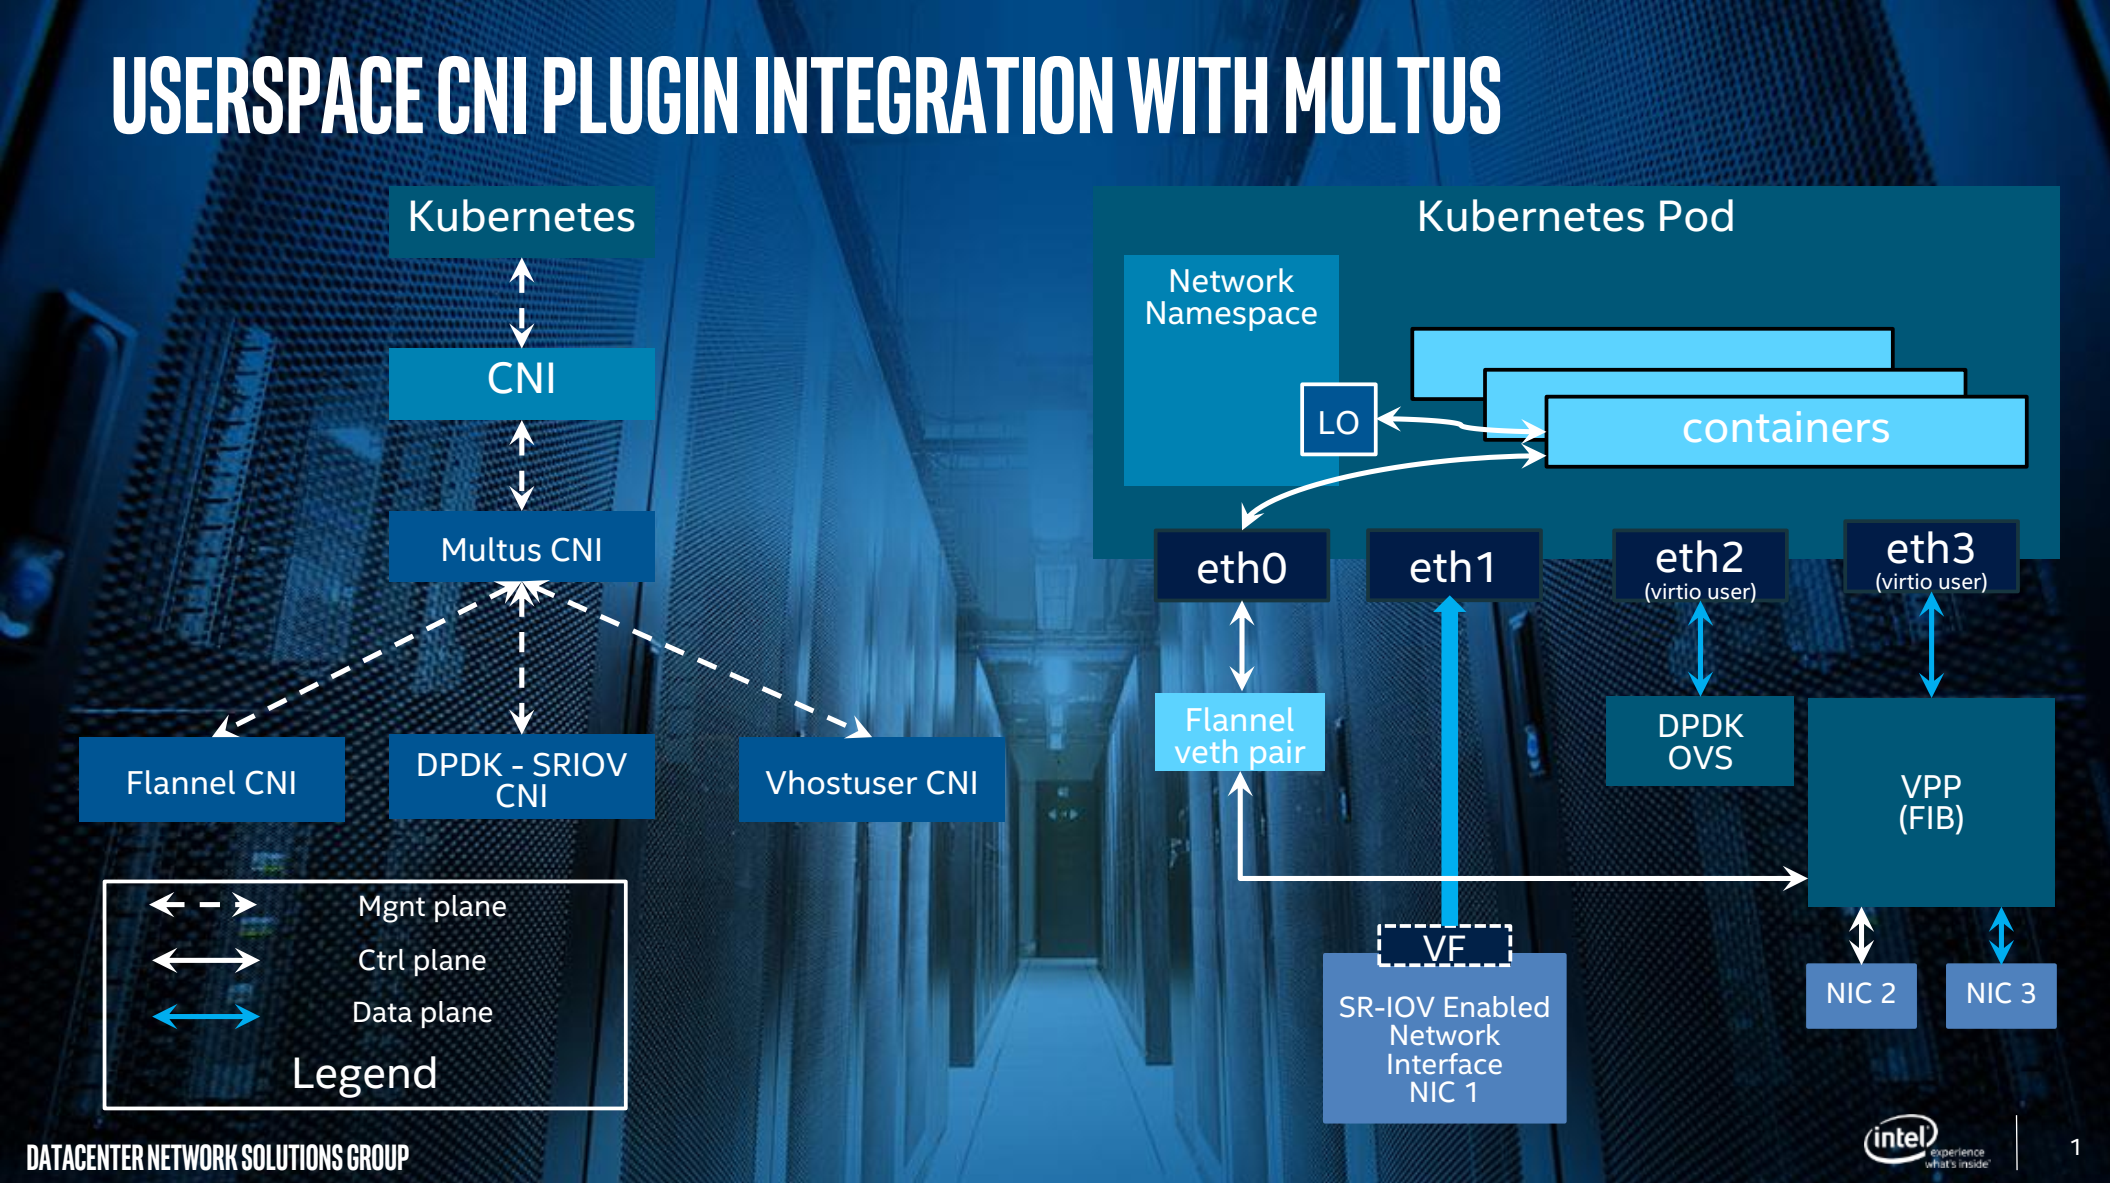 Userspace CNI with multus